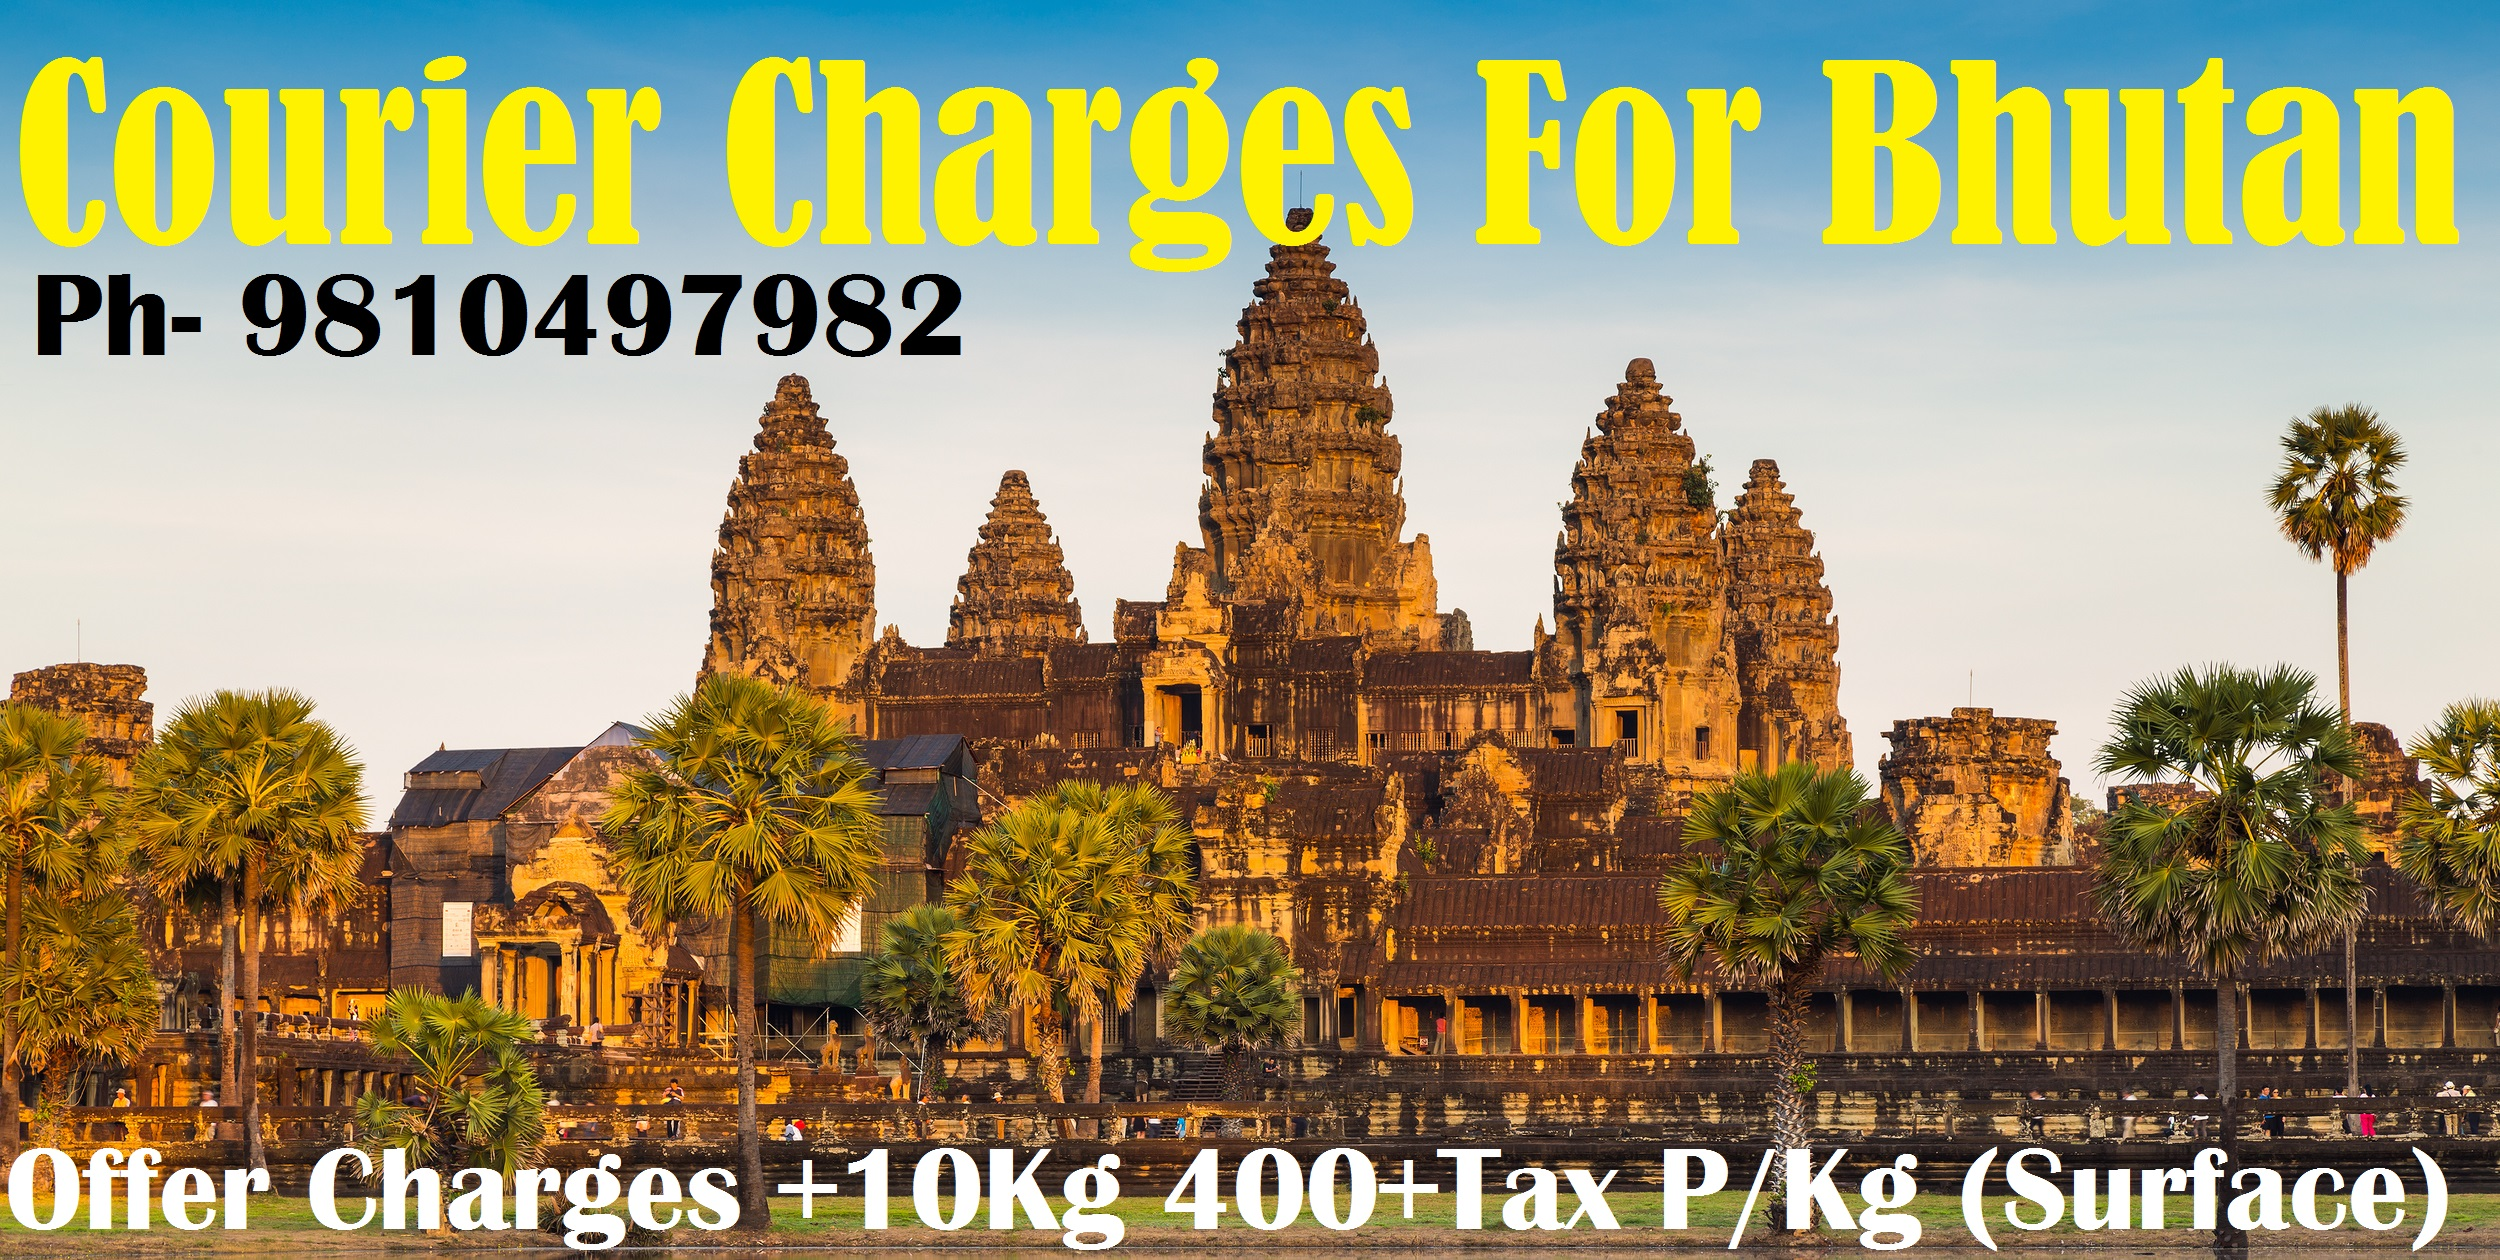 Courier Charges For Bhutan From Delhi